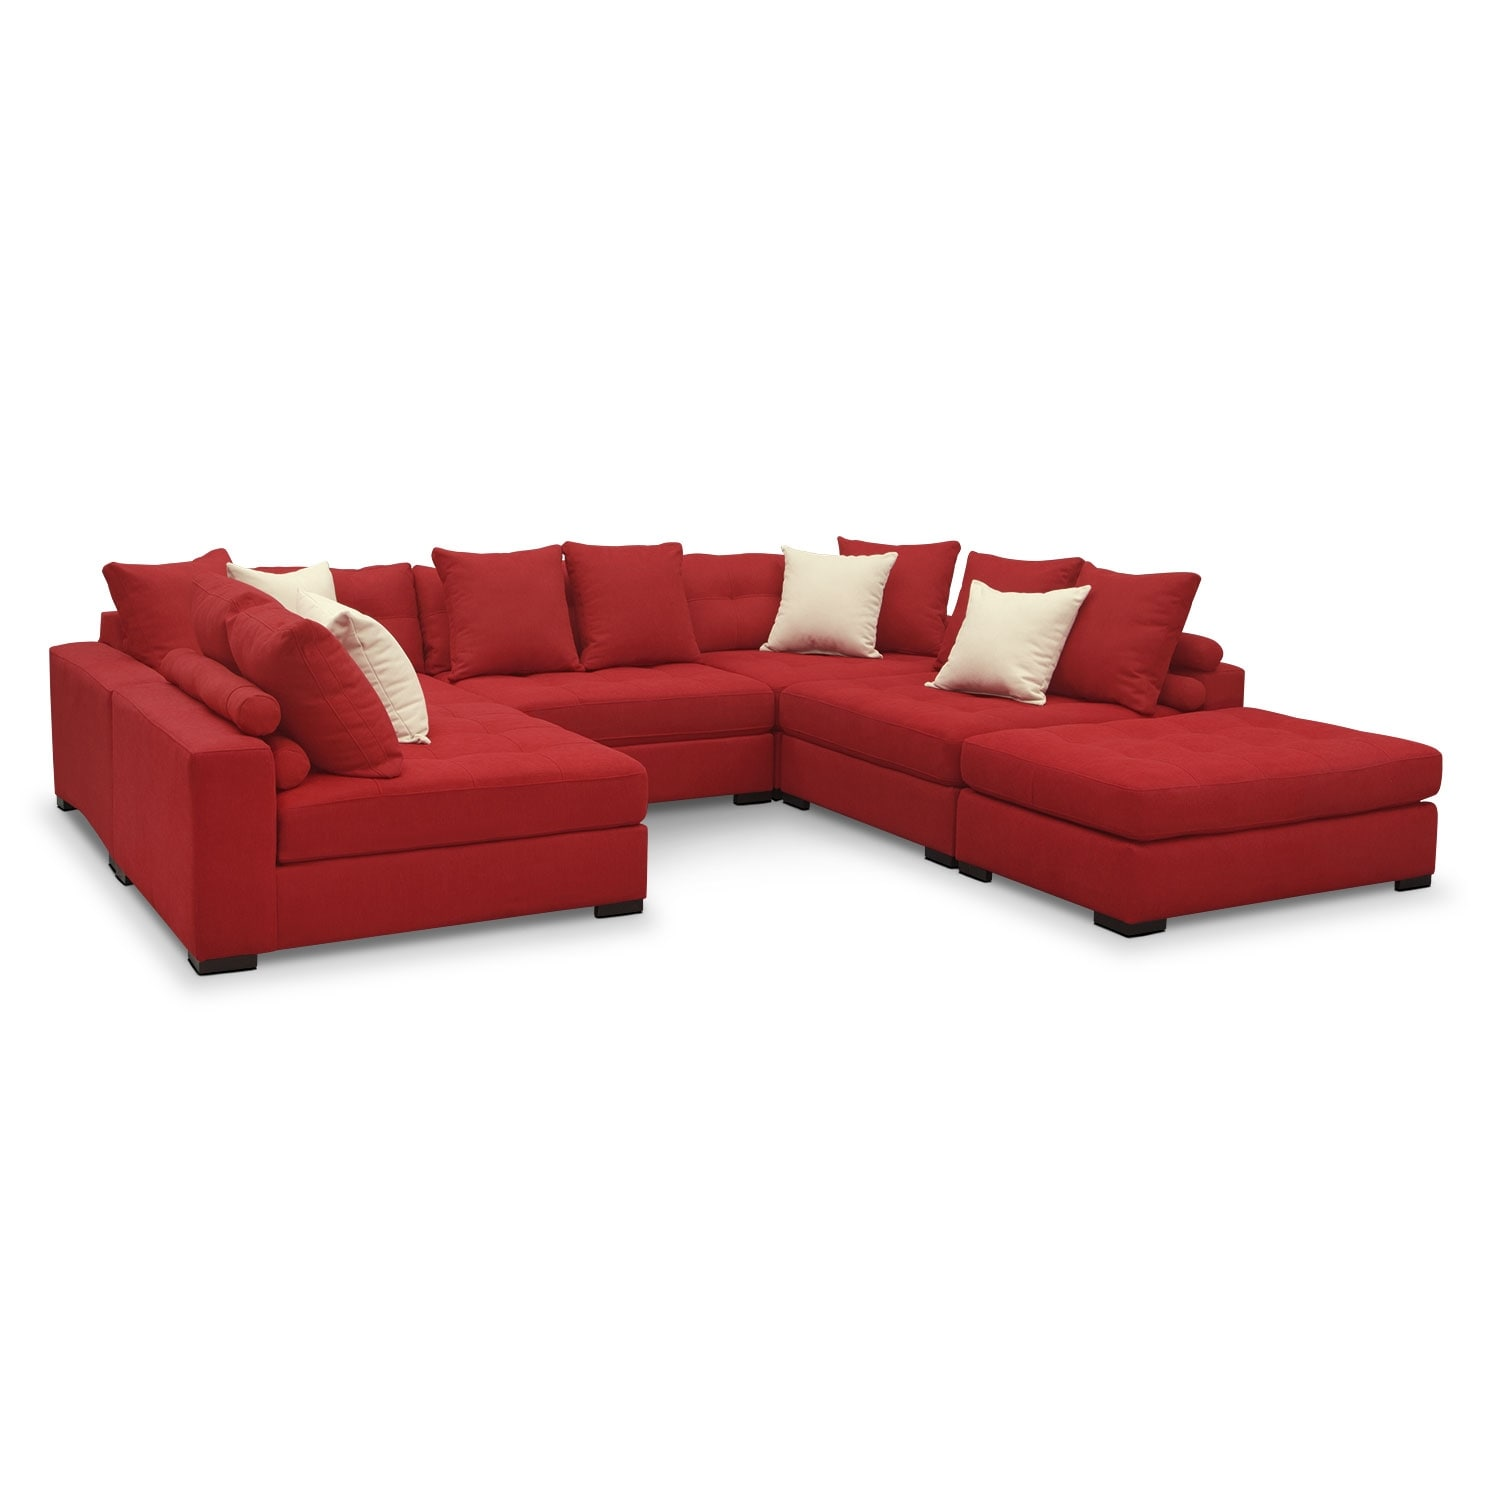 Living Room Furniture - Venti 6-Piece Sectional